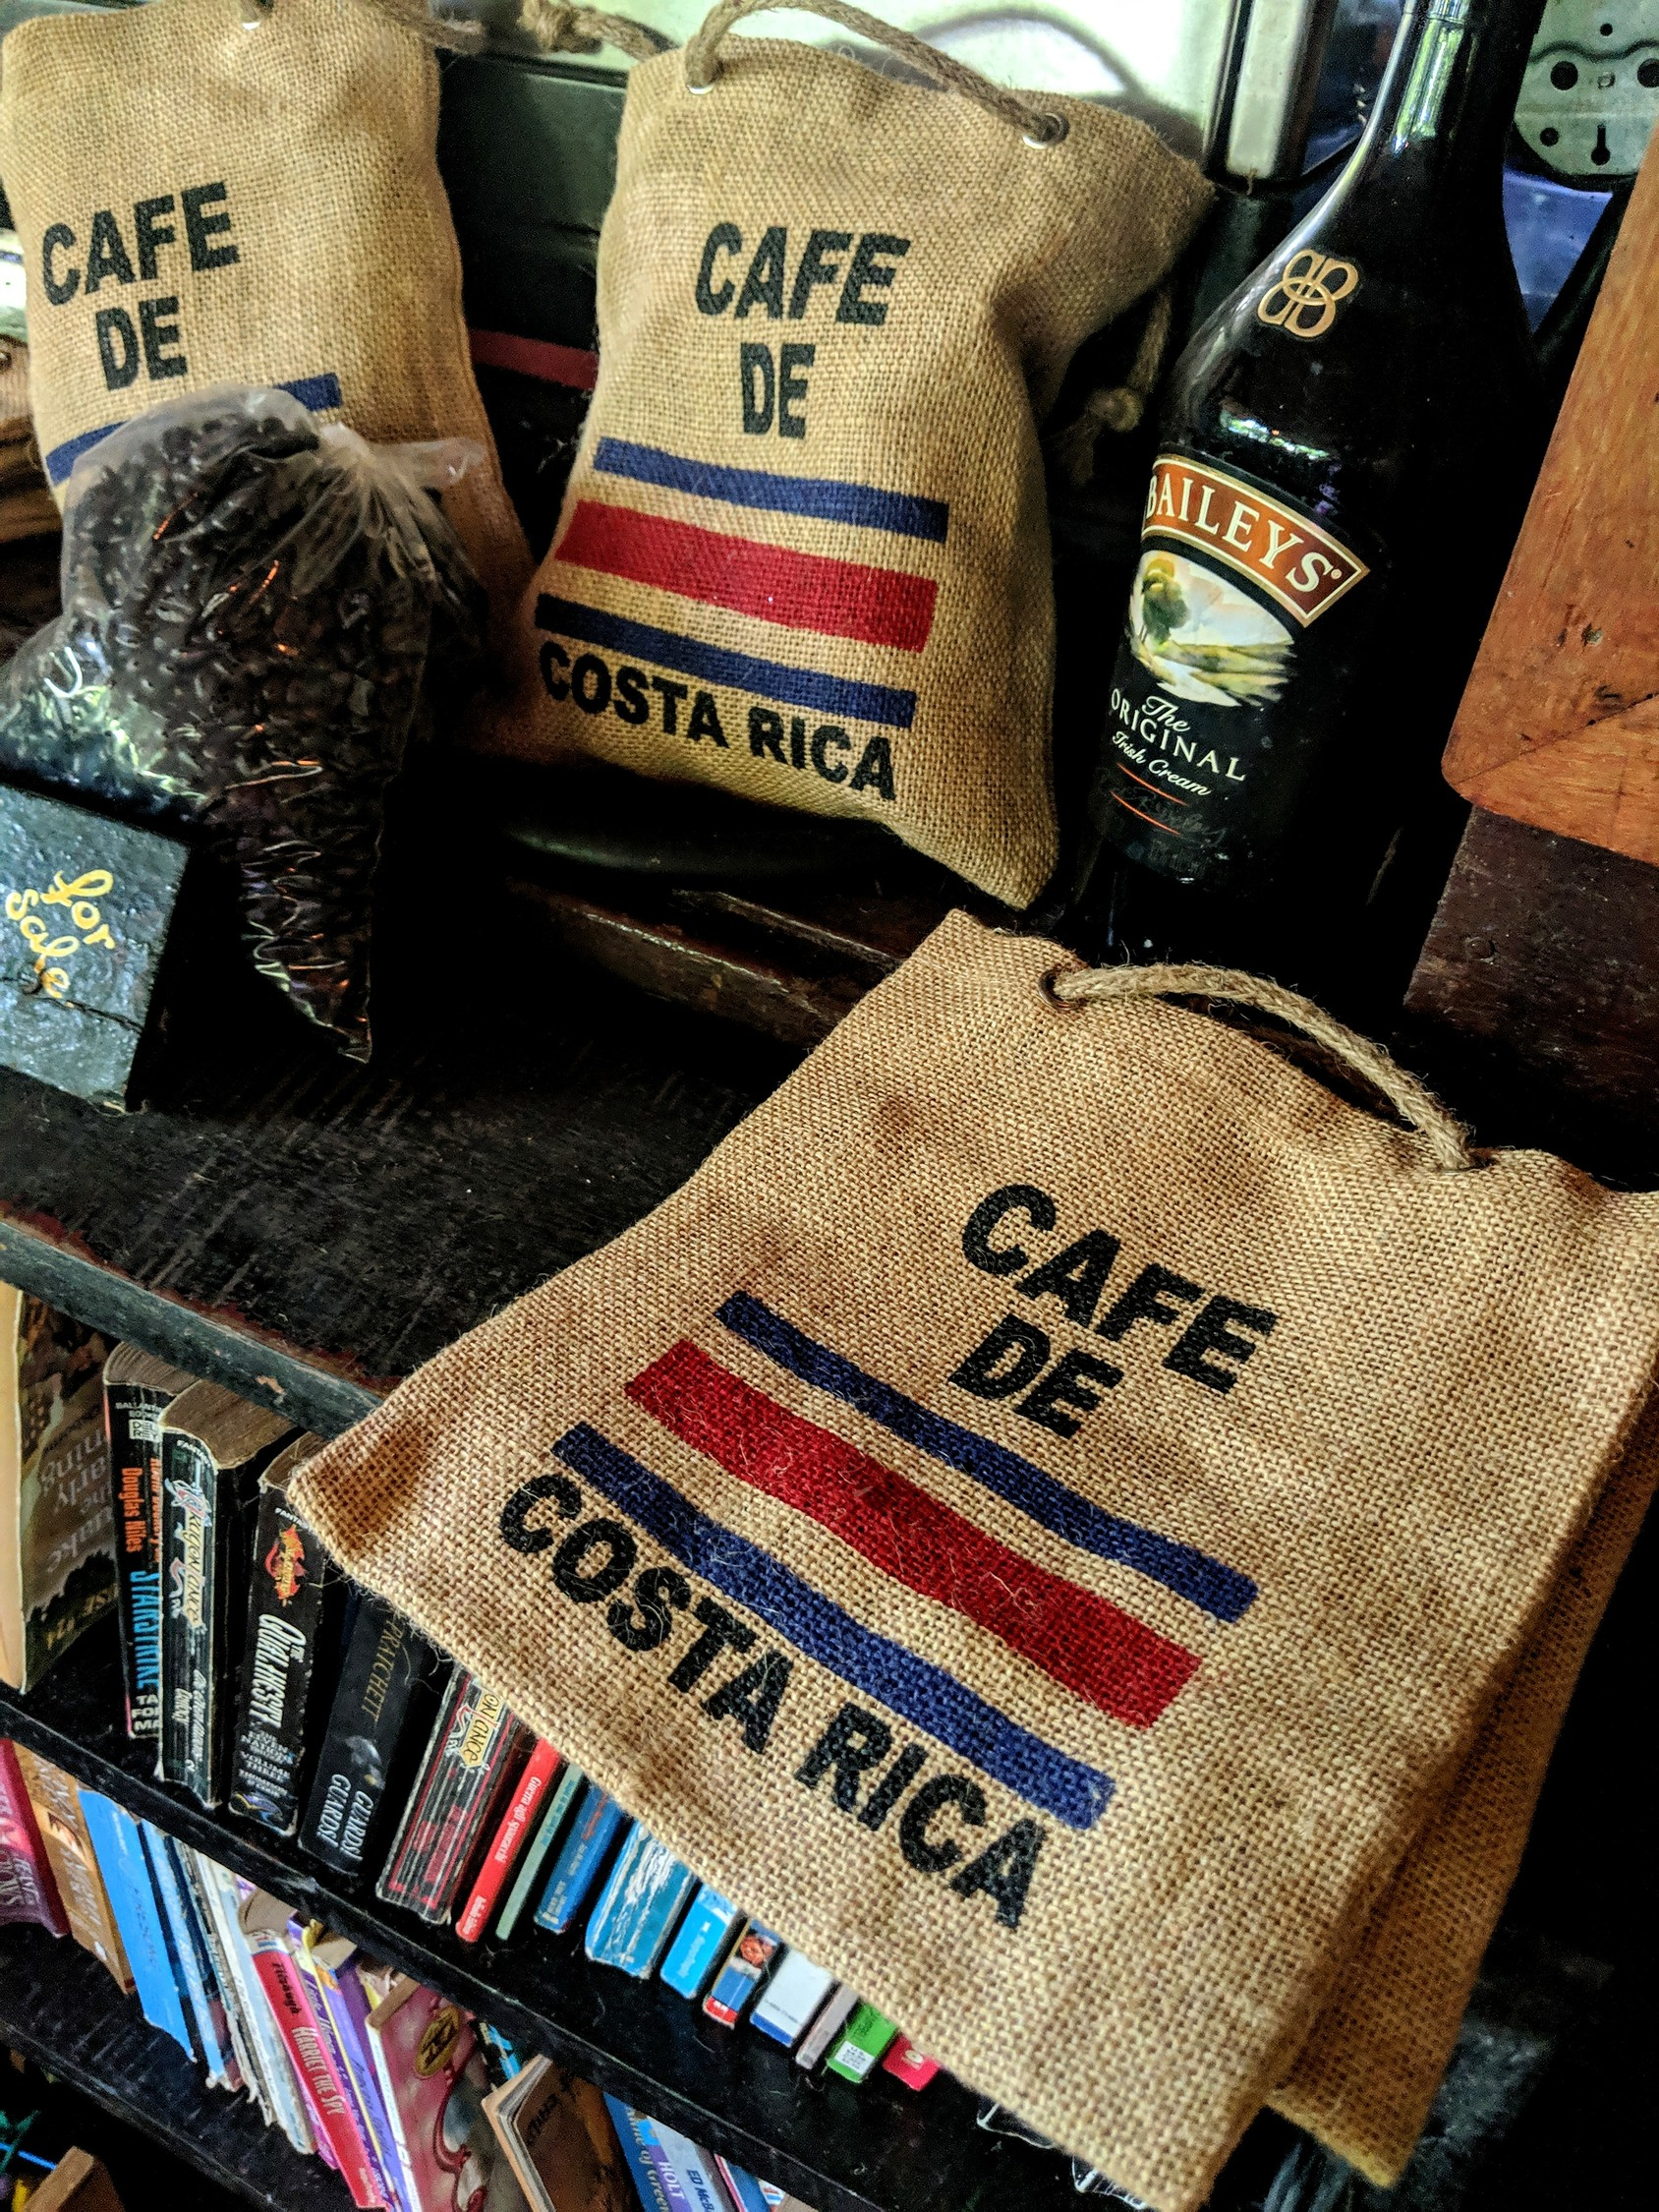 Costa Rica coffee bags.